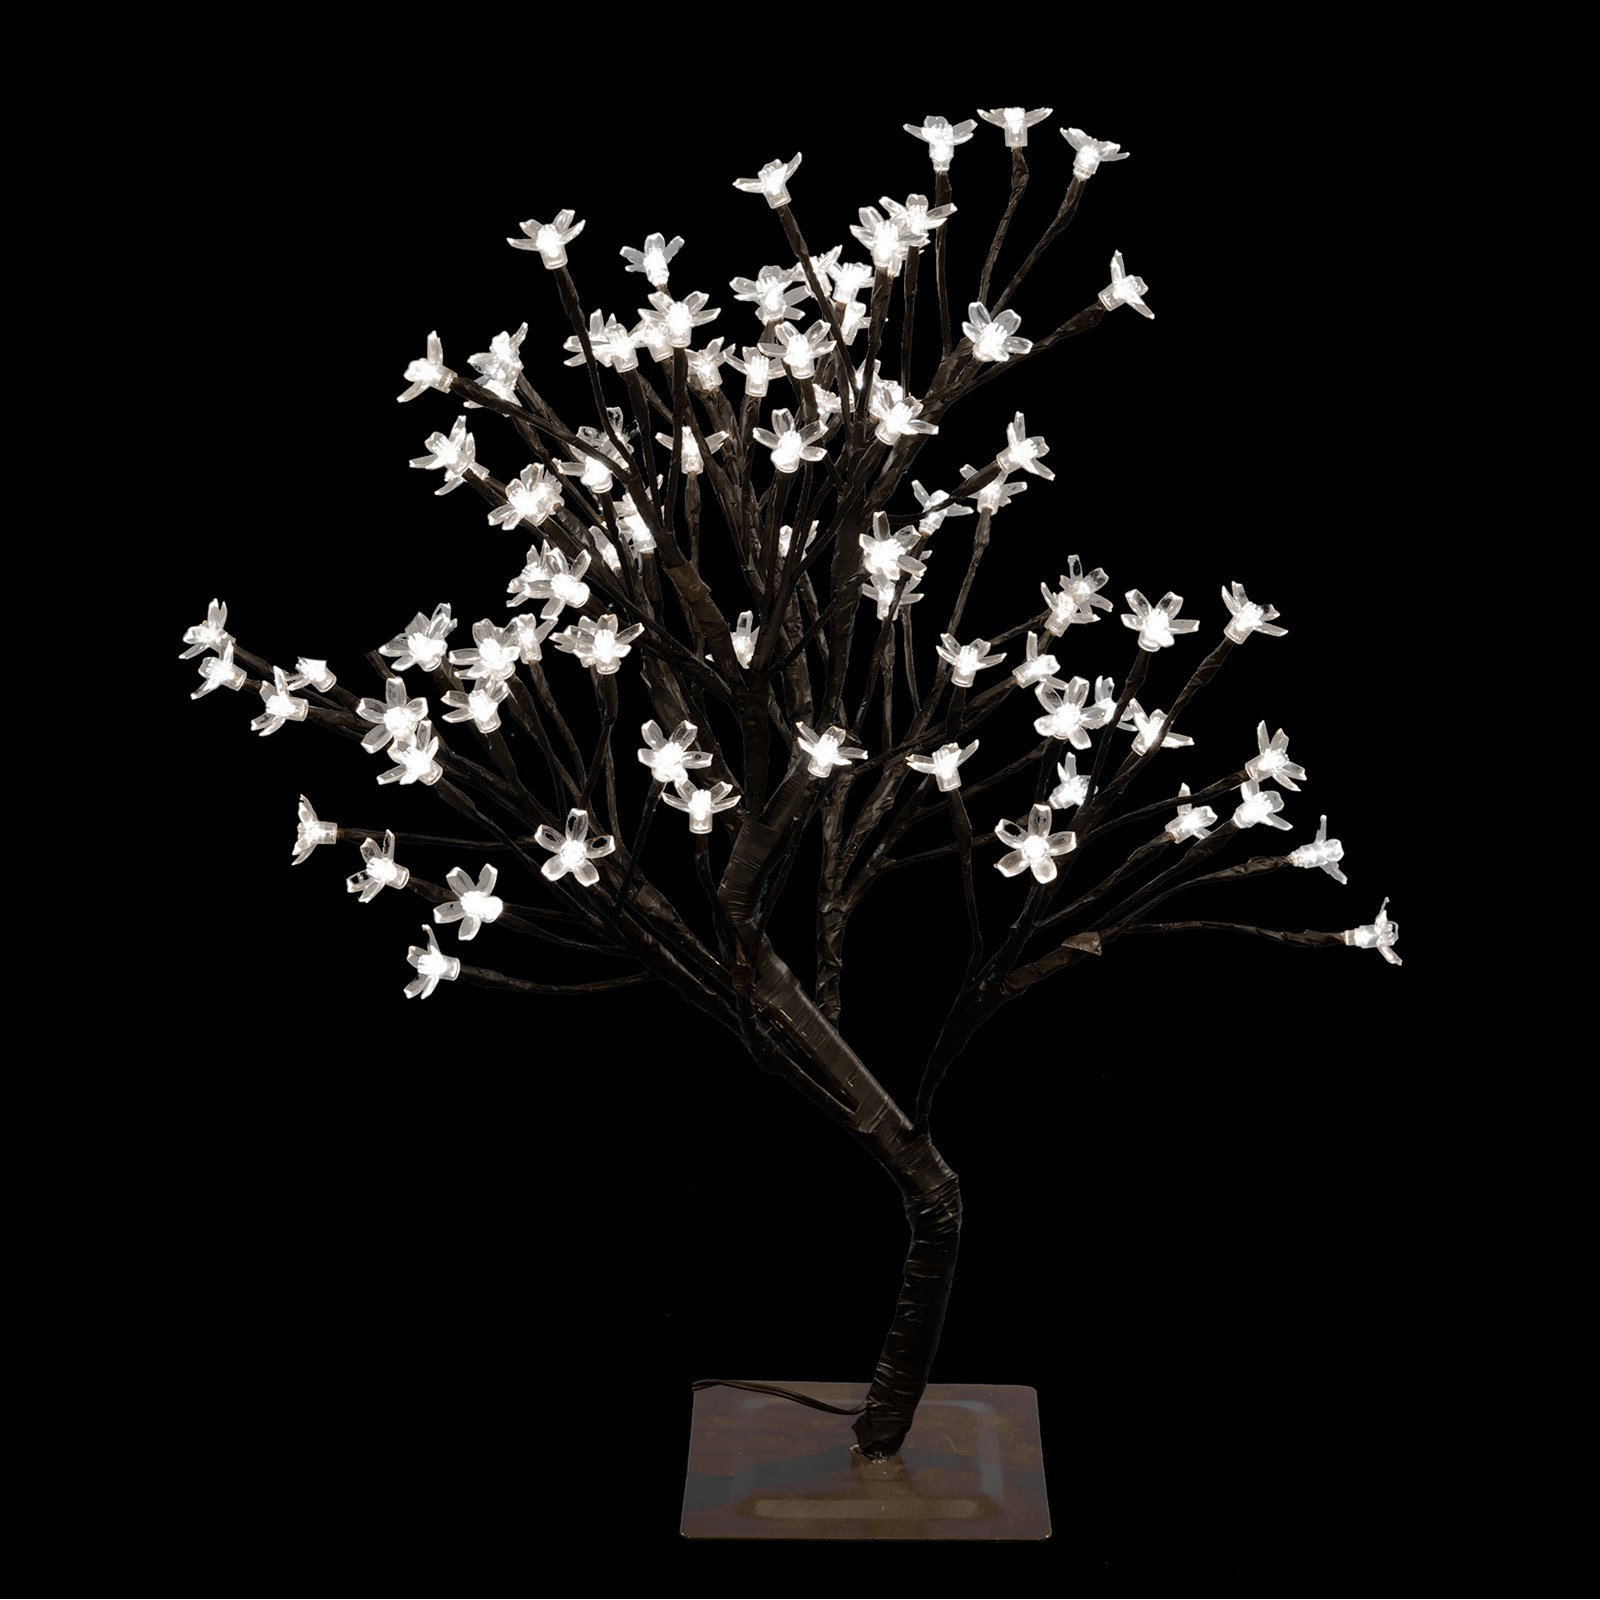 FLORAL LIGHTS-BONSAI TREE-INDOOR/OUTDOOR WARM WT AC 96 LED